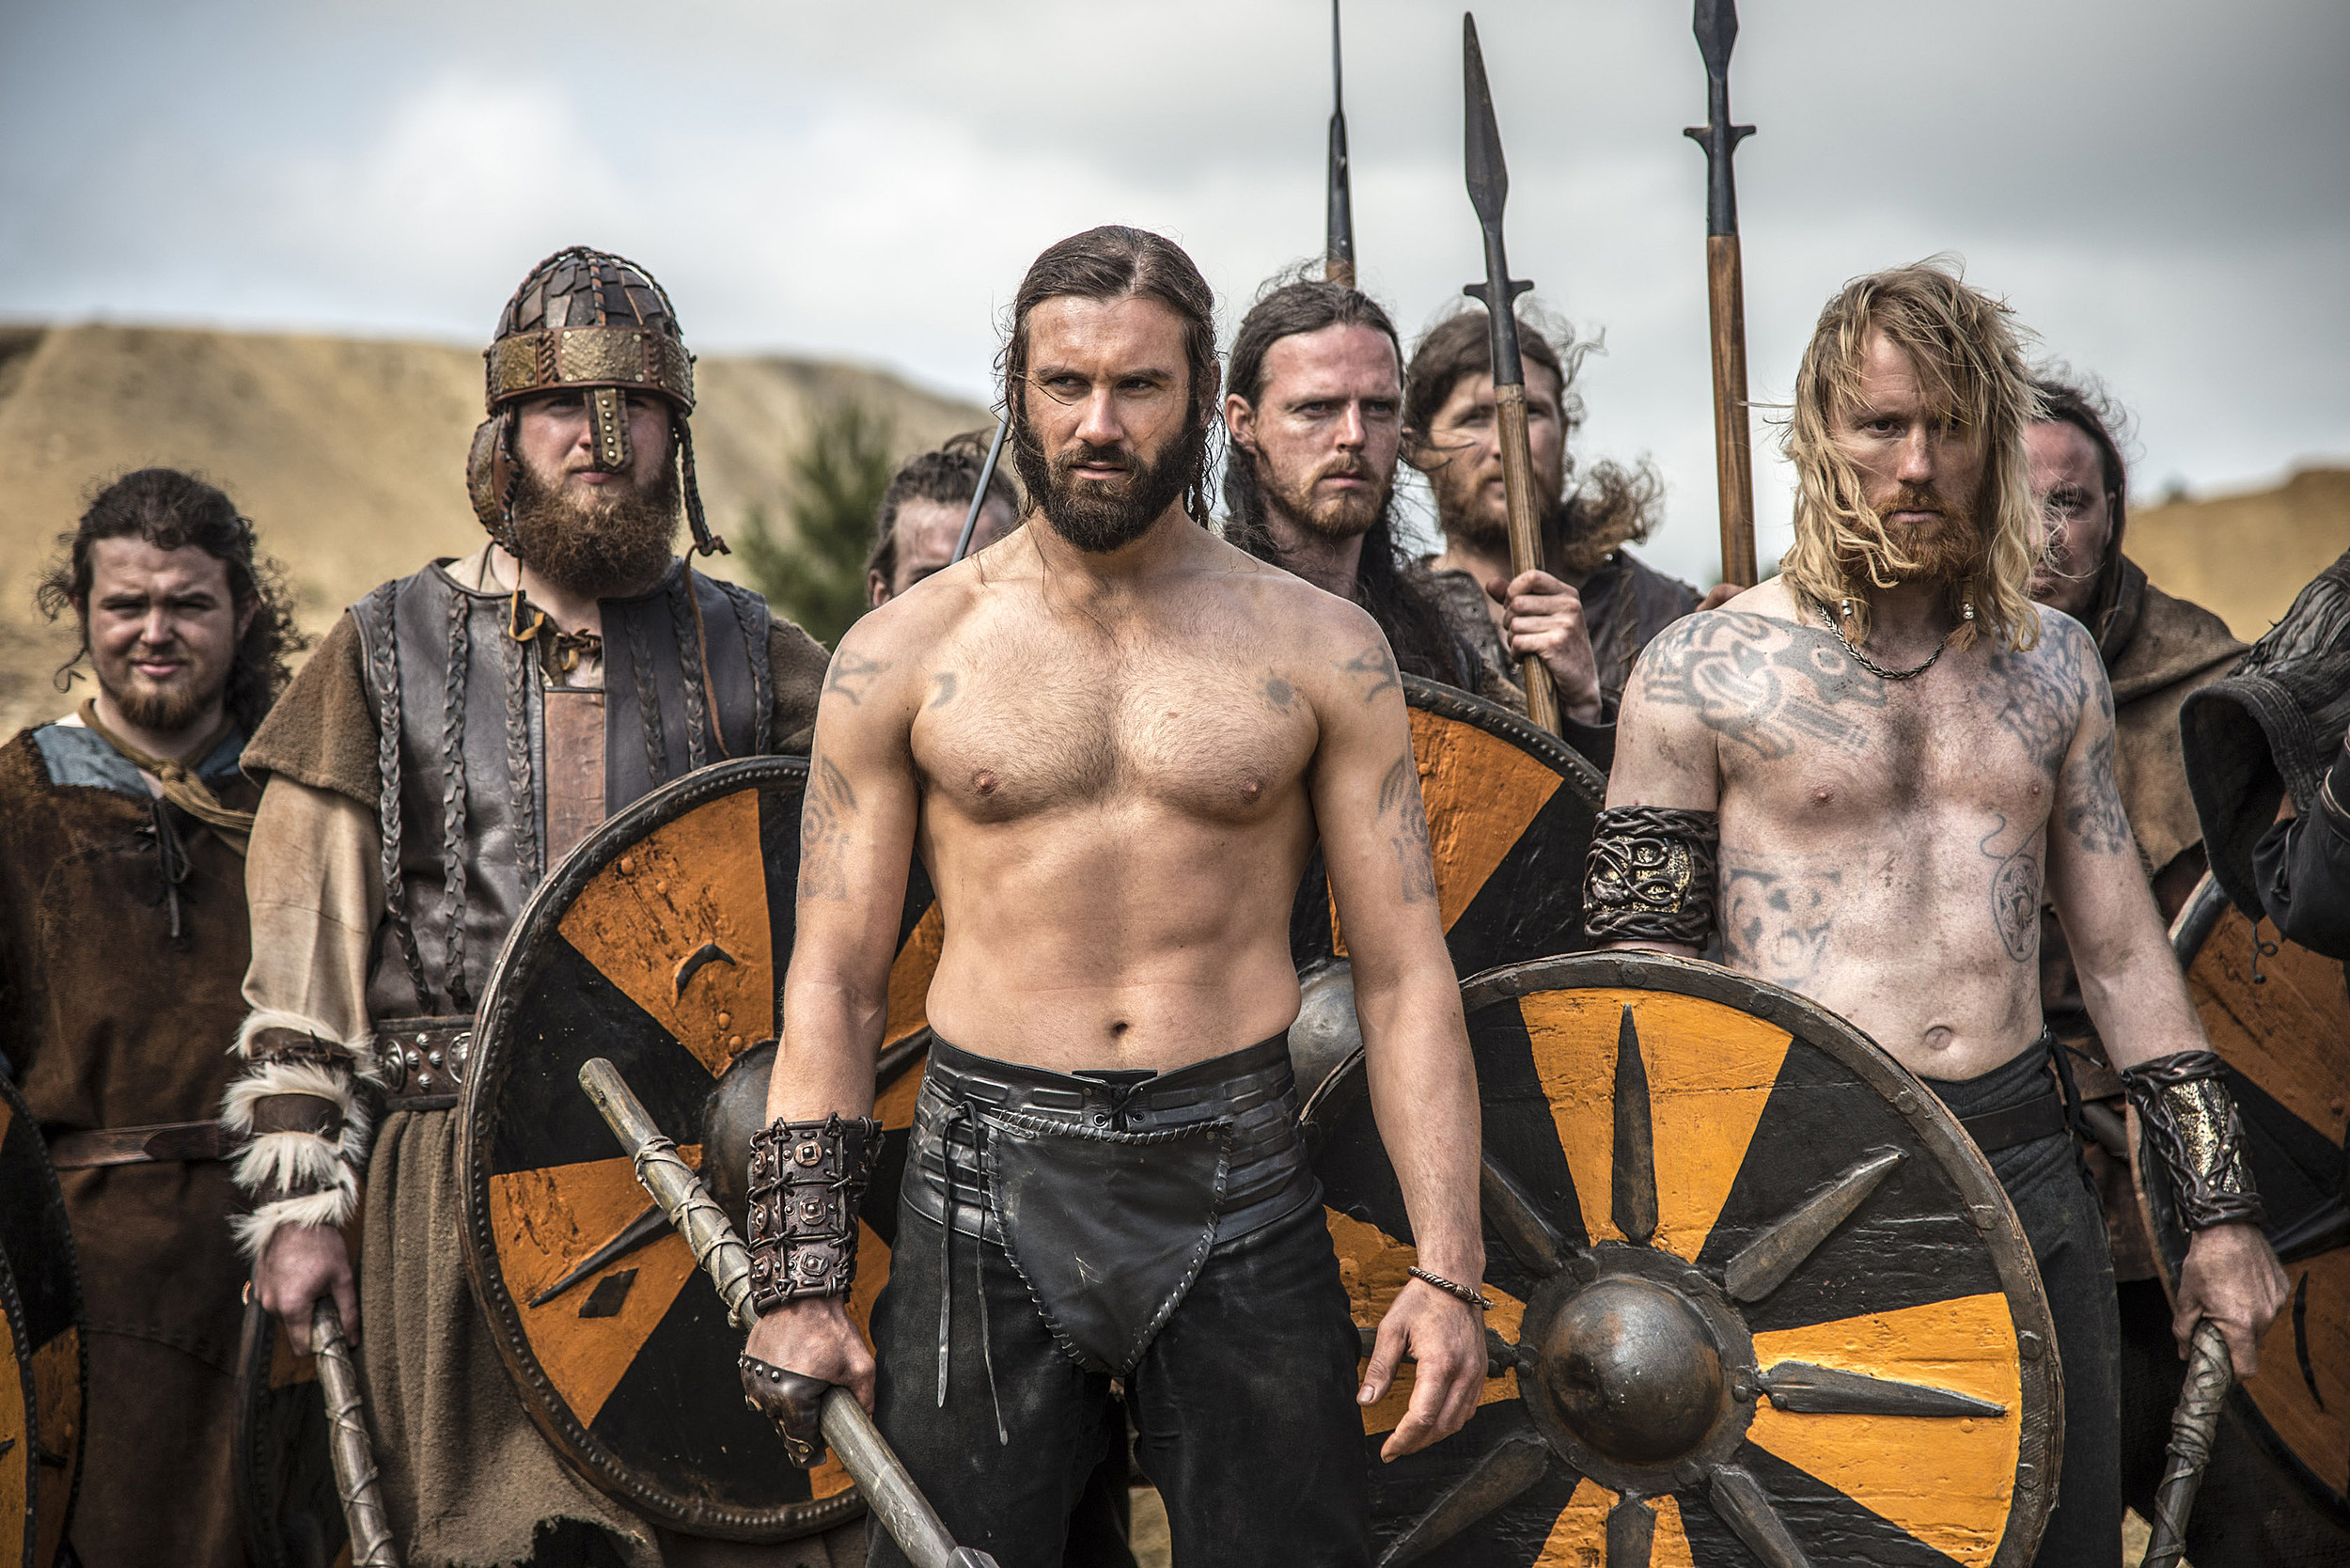 Vikings' Season 2: Ragnar and Rollo Go to War in First Photos